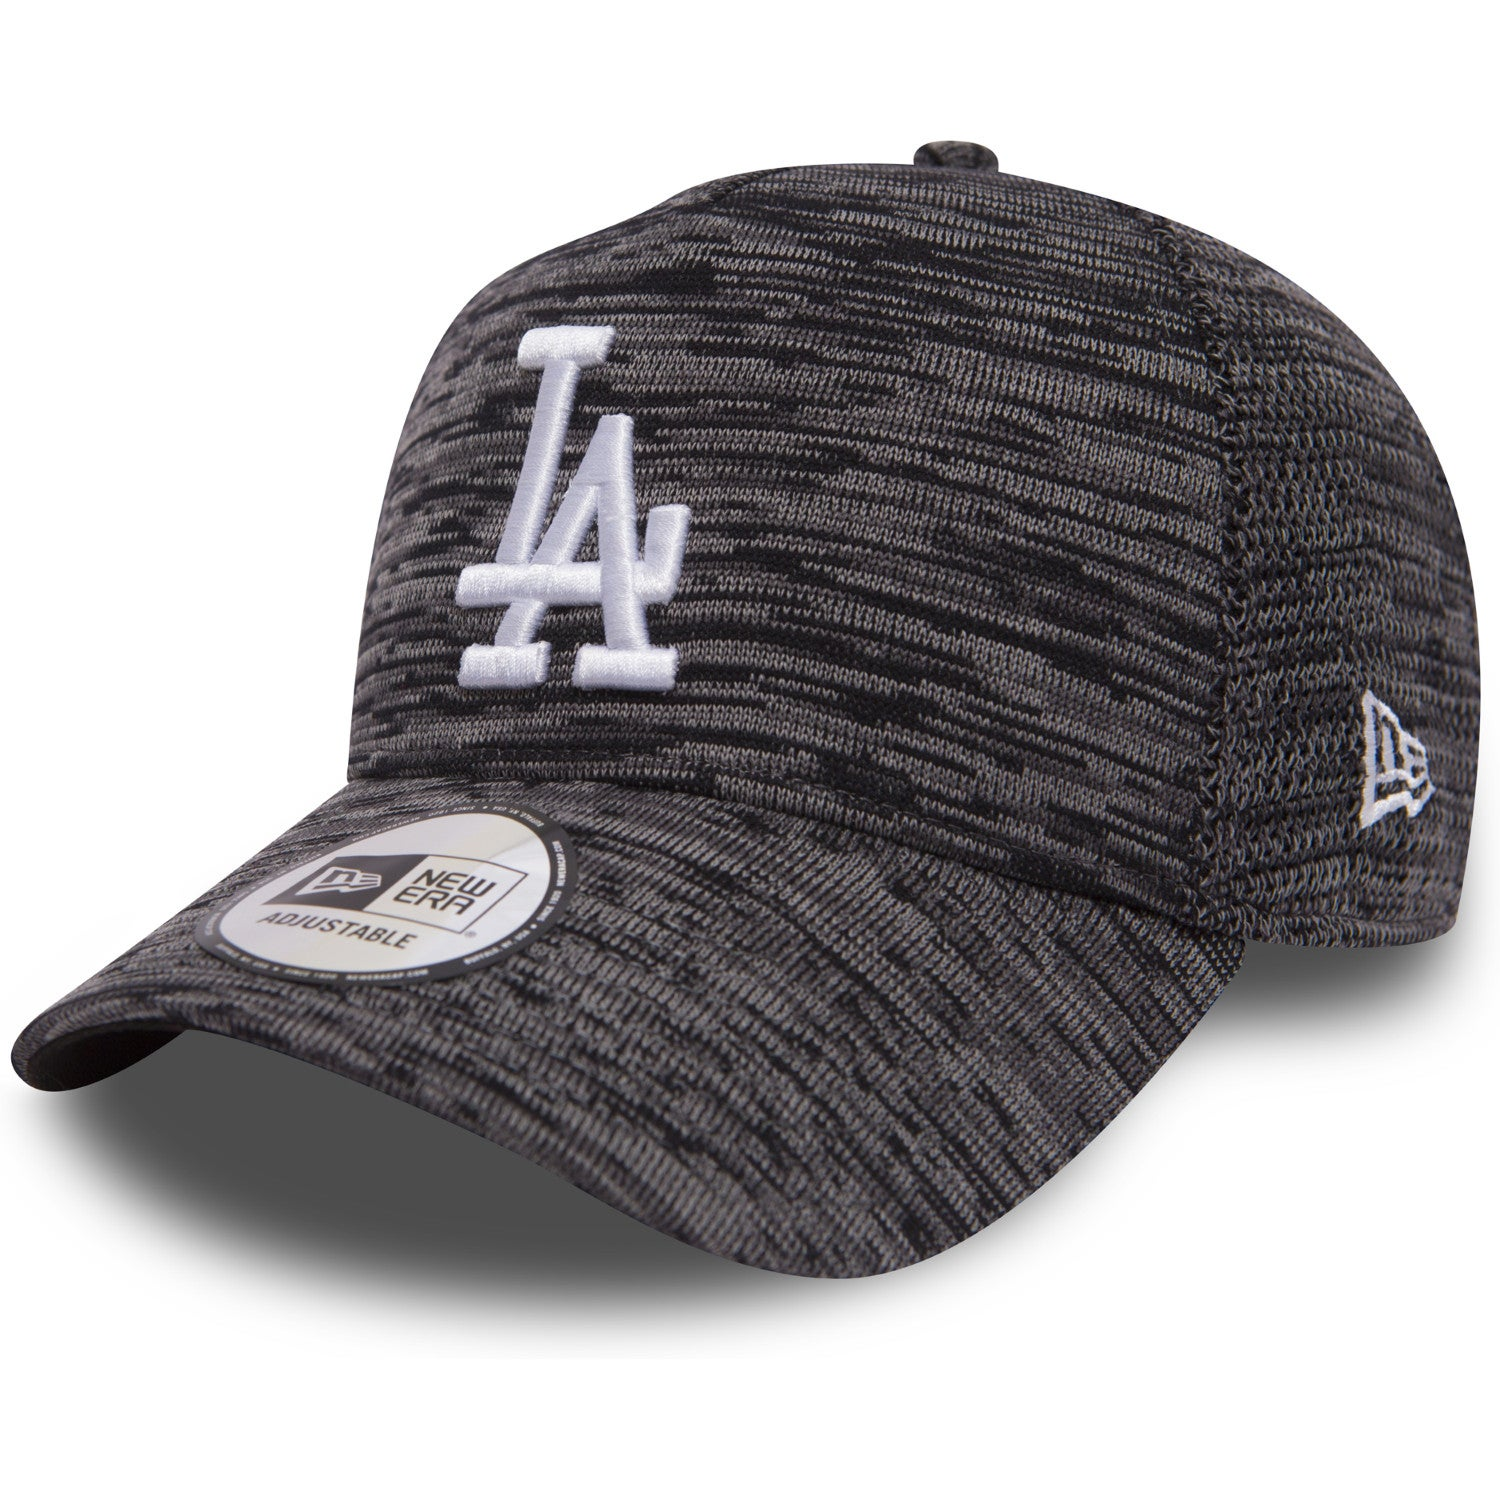 New Era 9Forty A Frame Engineered Fit GRABLKGRH Mens Cap at Extremepie.com 121695c57a9